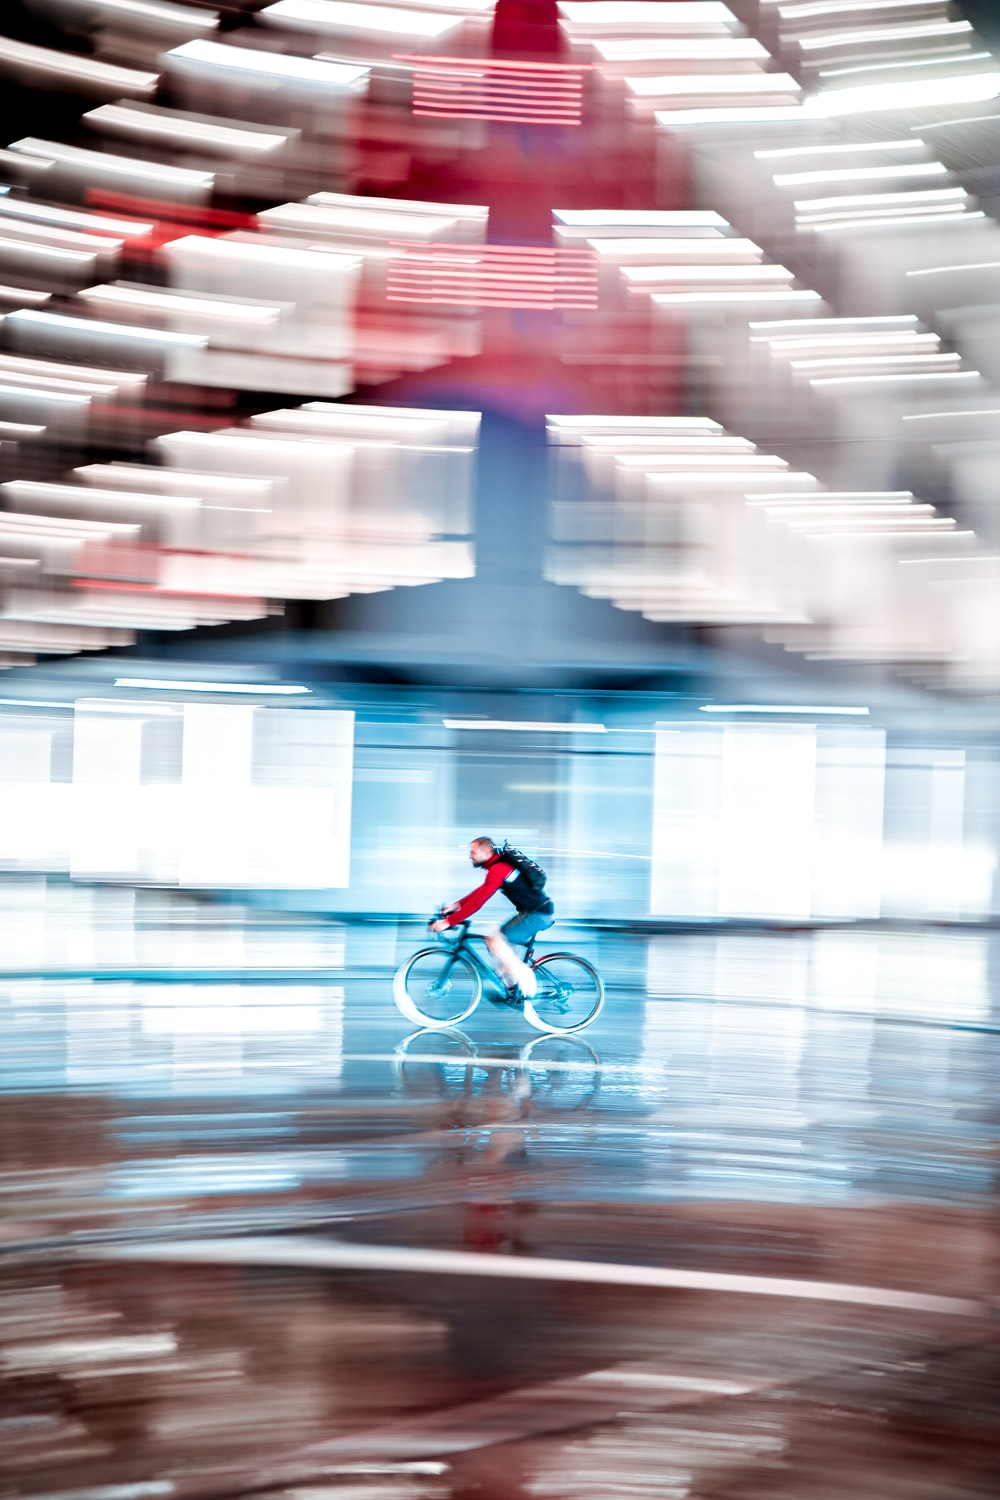 man in red jacket riding bicycle